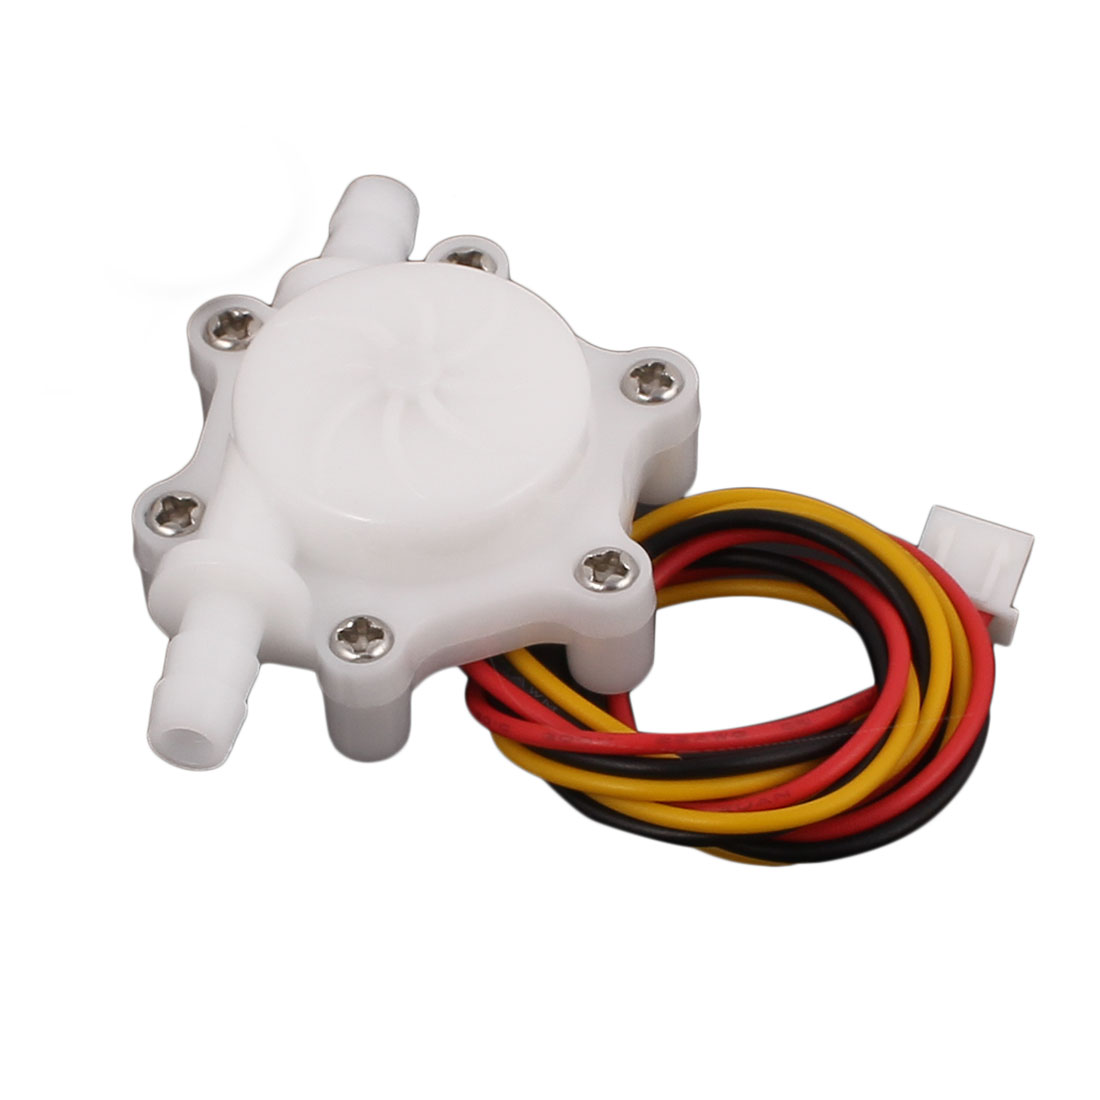 SEN-HZ06K 6mm Straight POM Hall Effect Water Flow Sensor 0.15-1.5L/Min